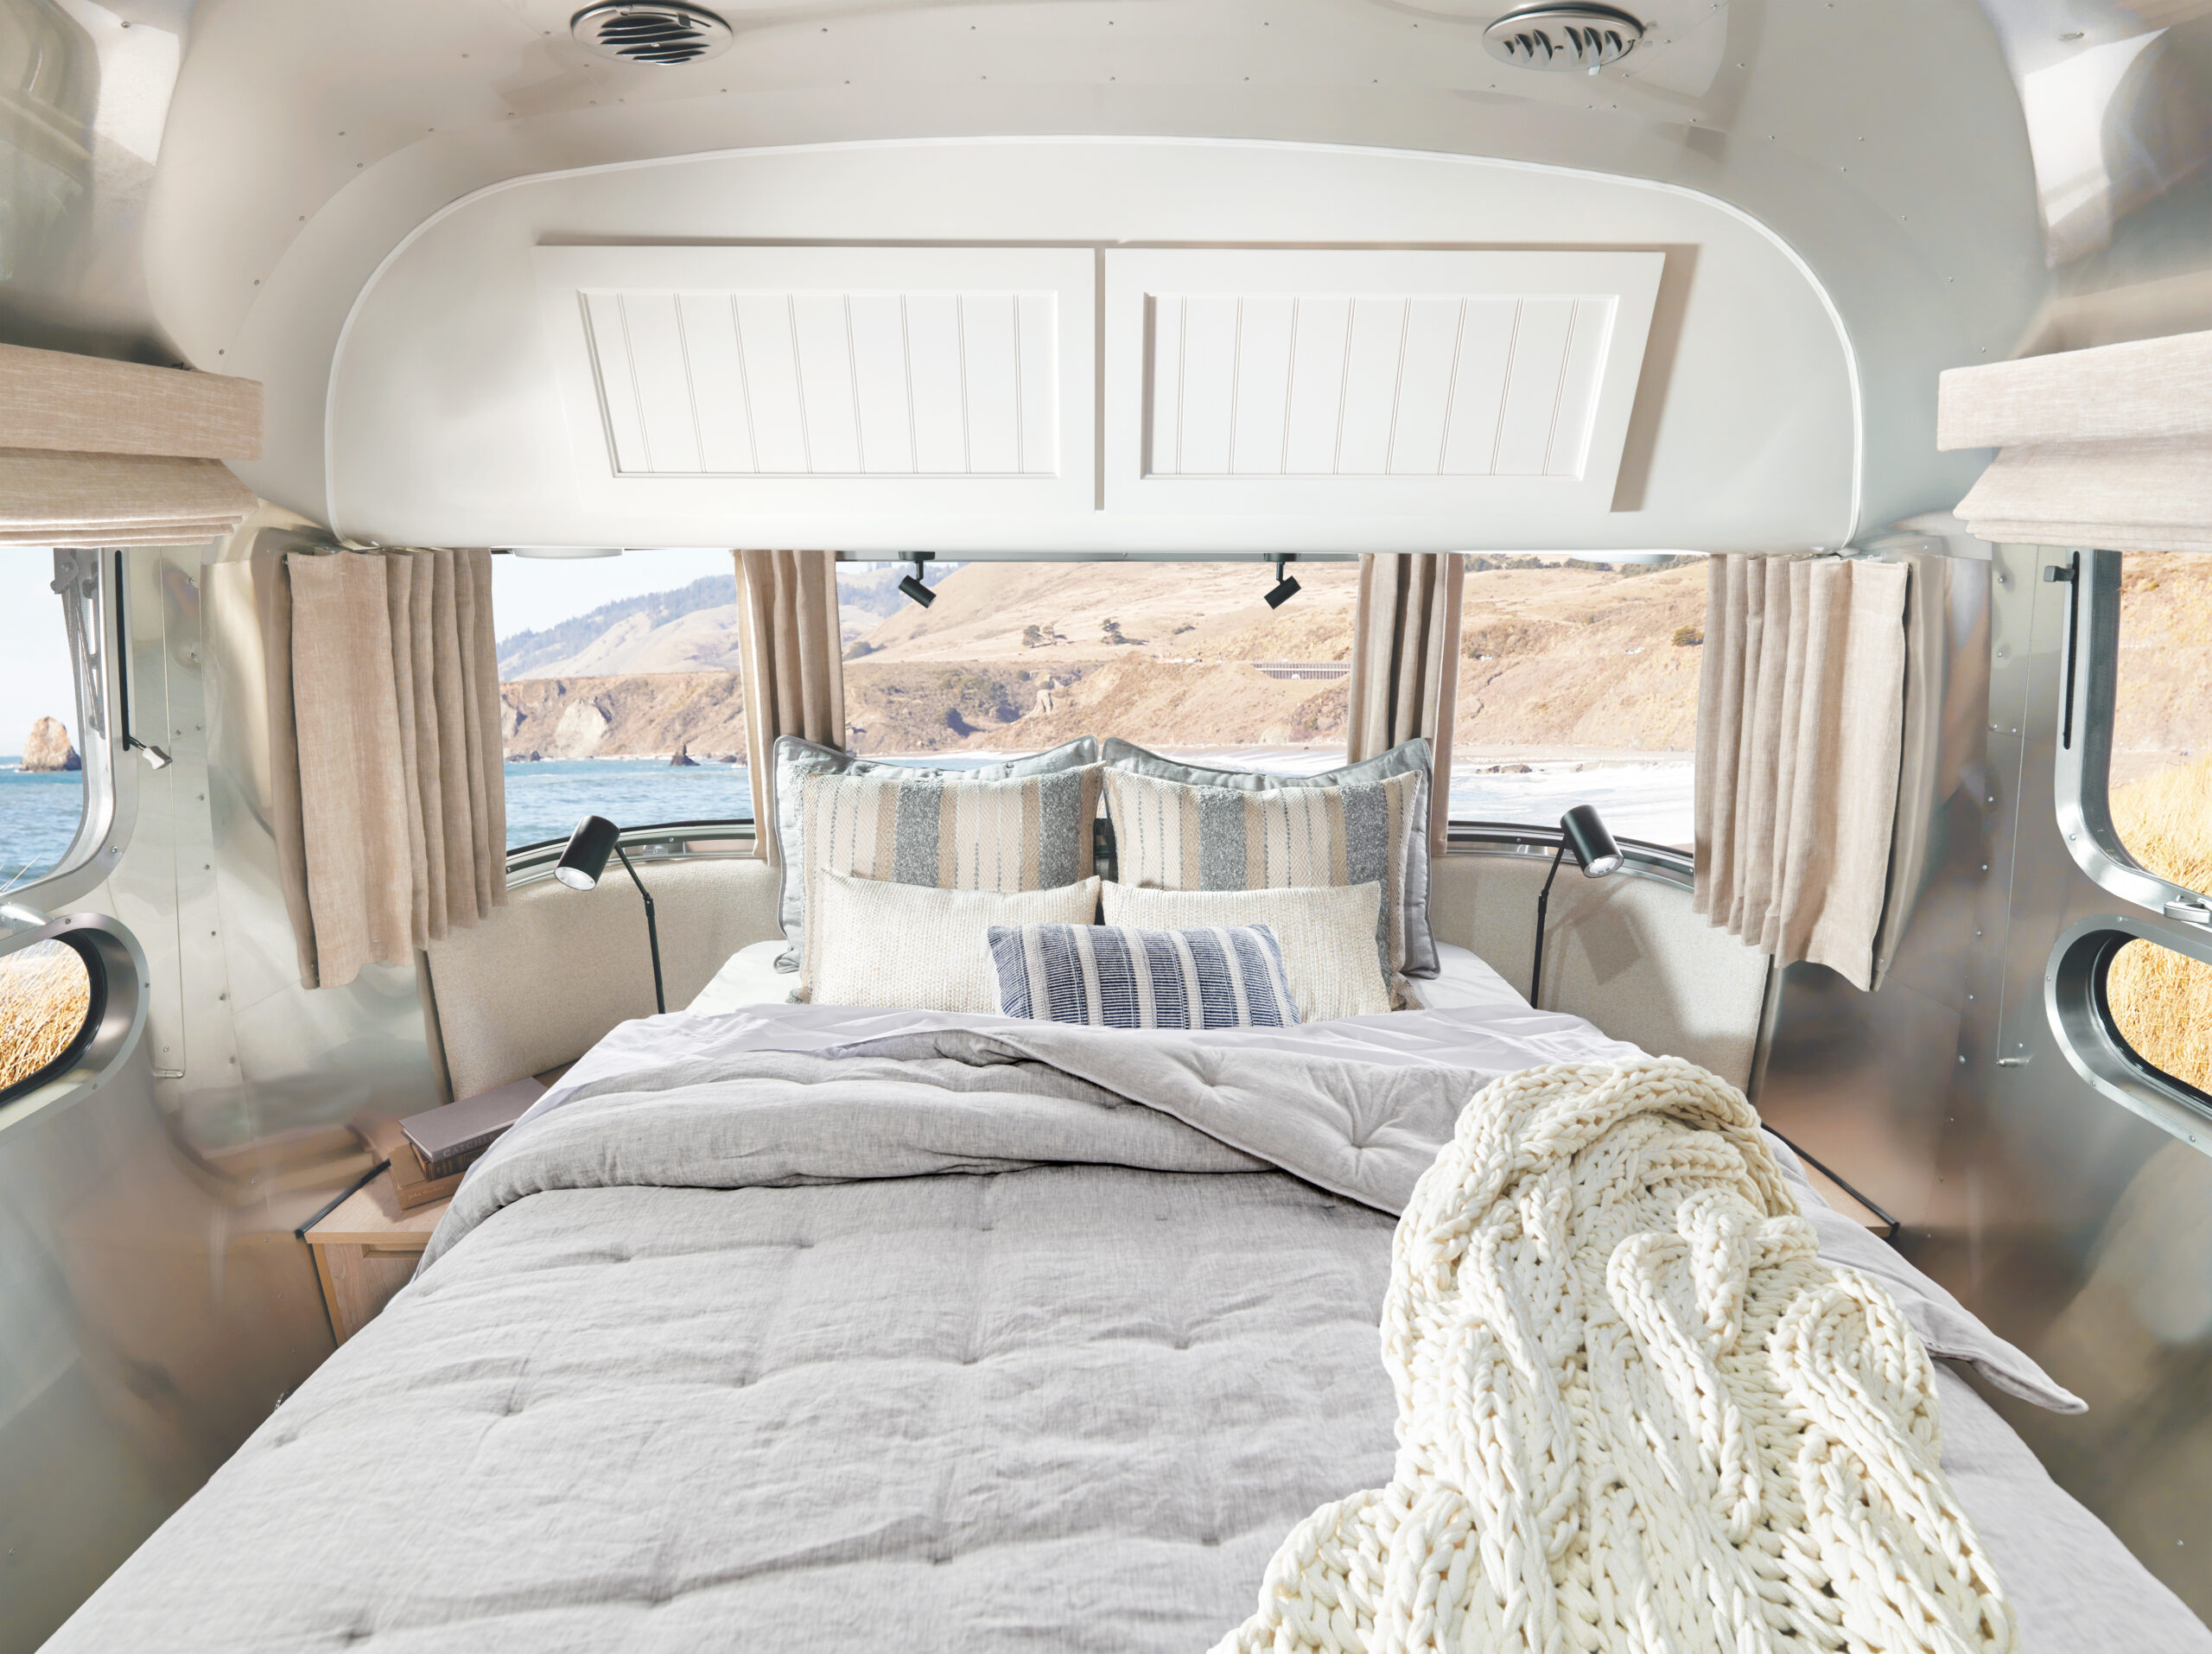 The Airstream bedroom with Pottery Barn linens